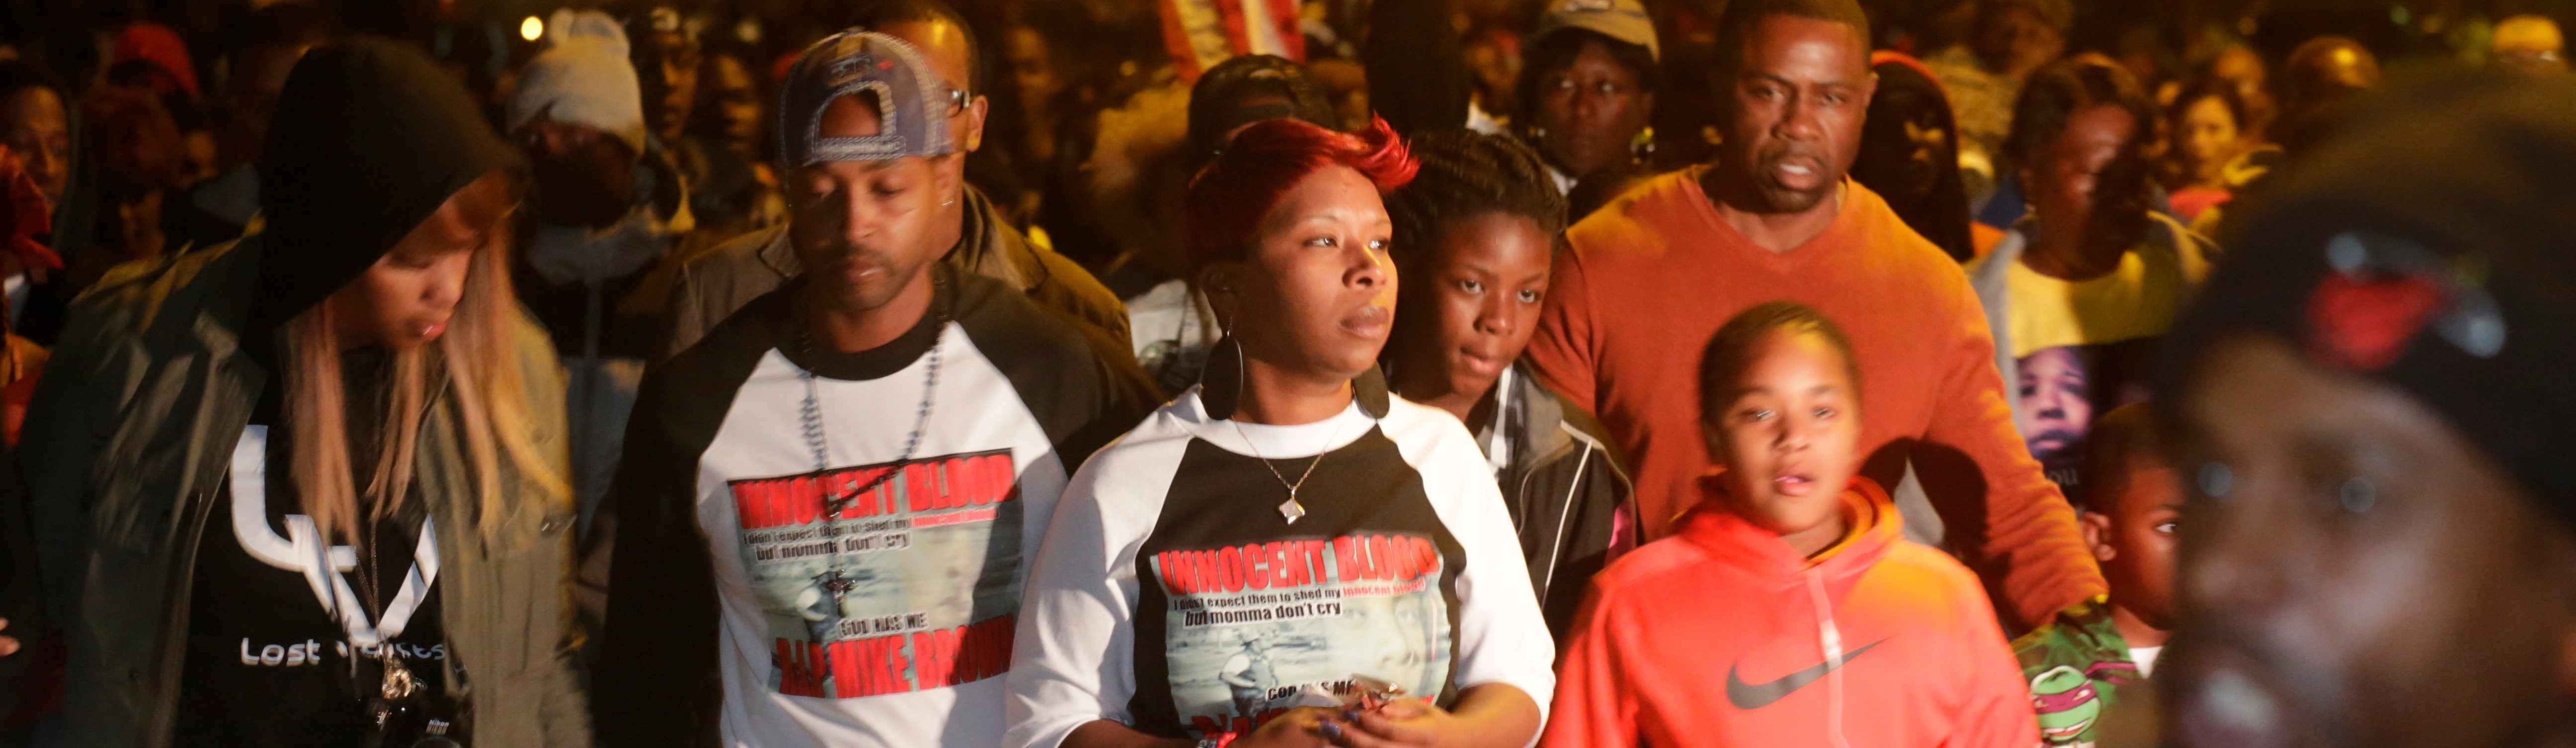 meta investigation on the michael brown case essay Events such as the 2014 shooting of michael brown in ferguson, mo,  a  2014 study published in the journal of experimental criminology,.